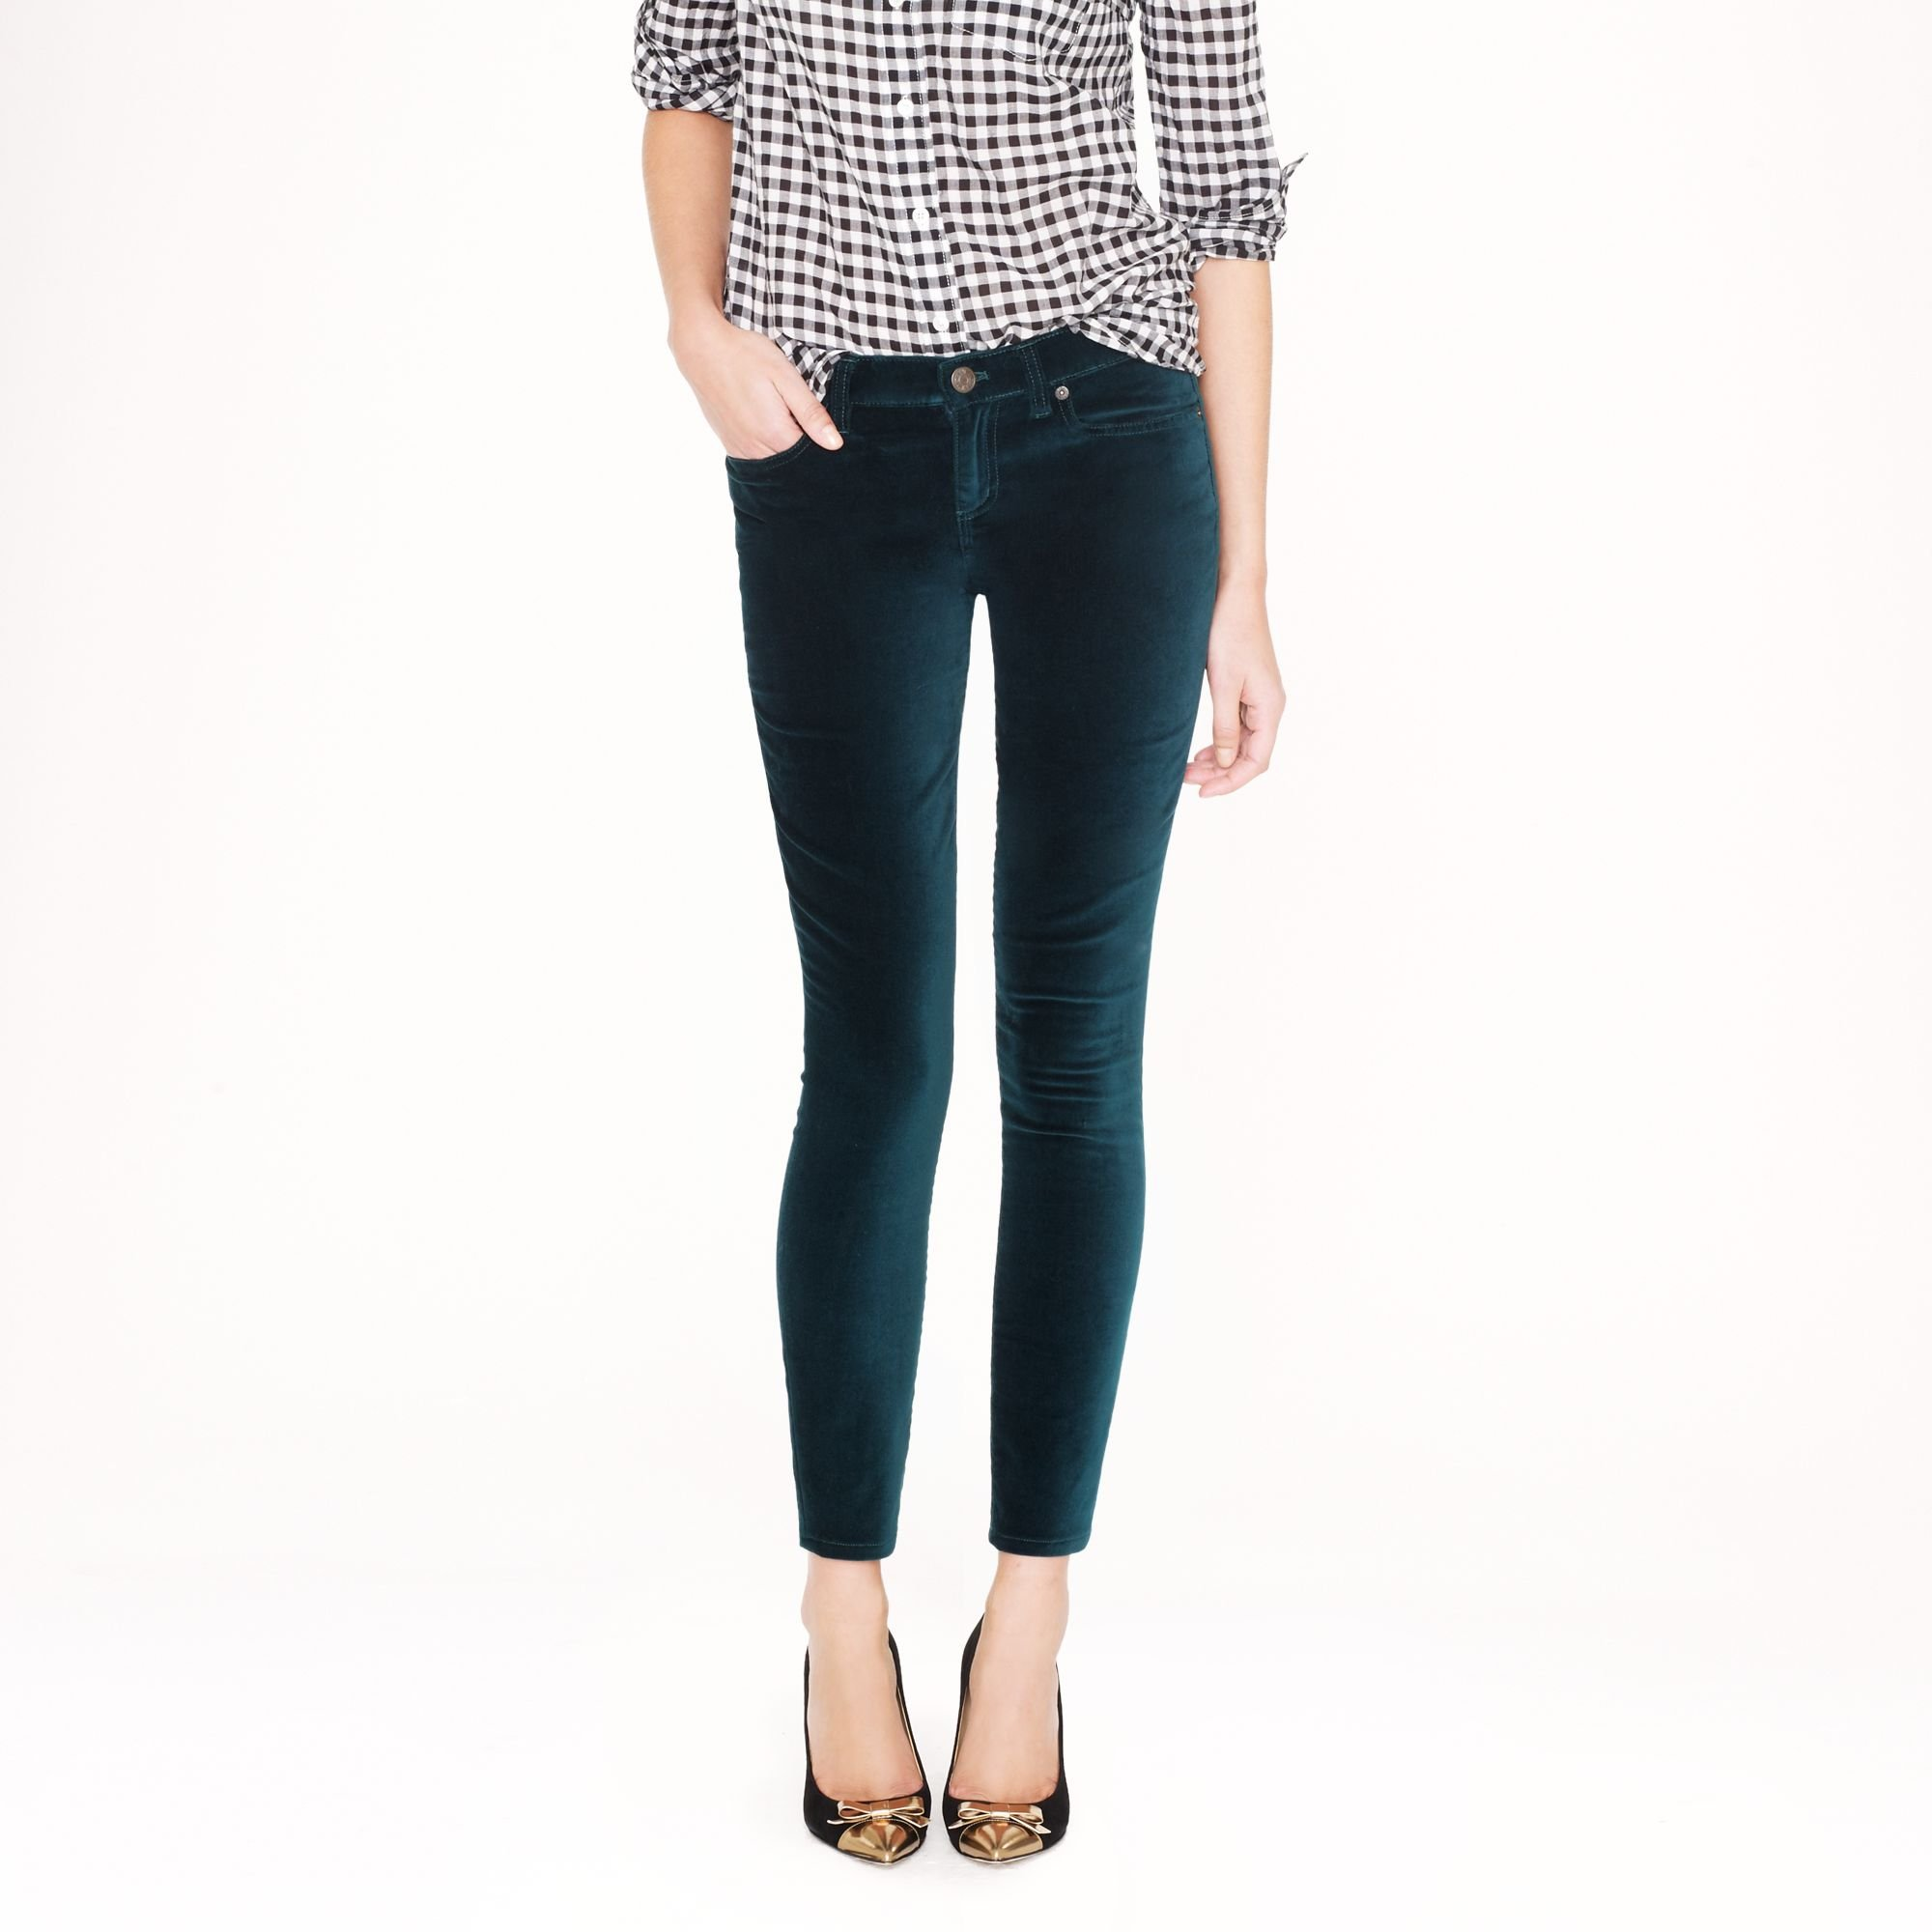 J.Crew Toothpick Jean in Velvet | Fancy Friday - Fancy Pants Holiday Pieces